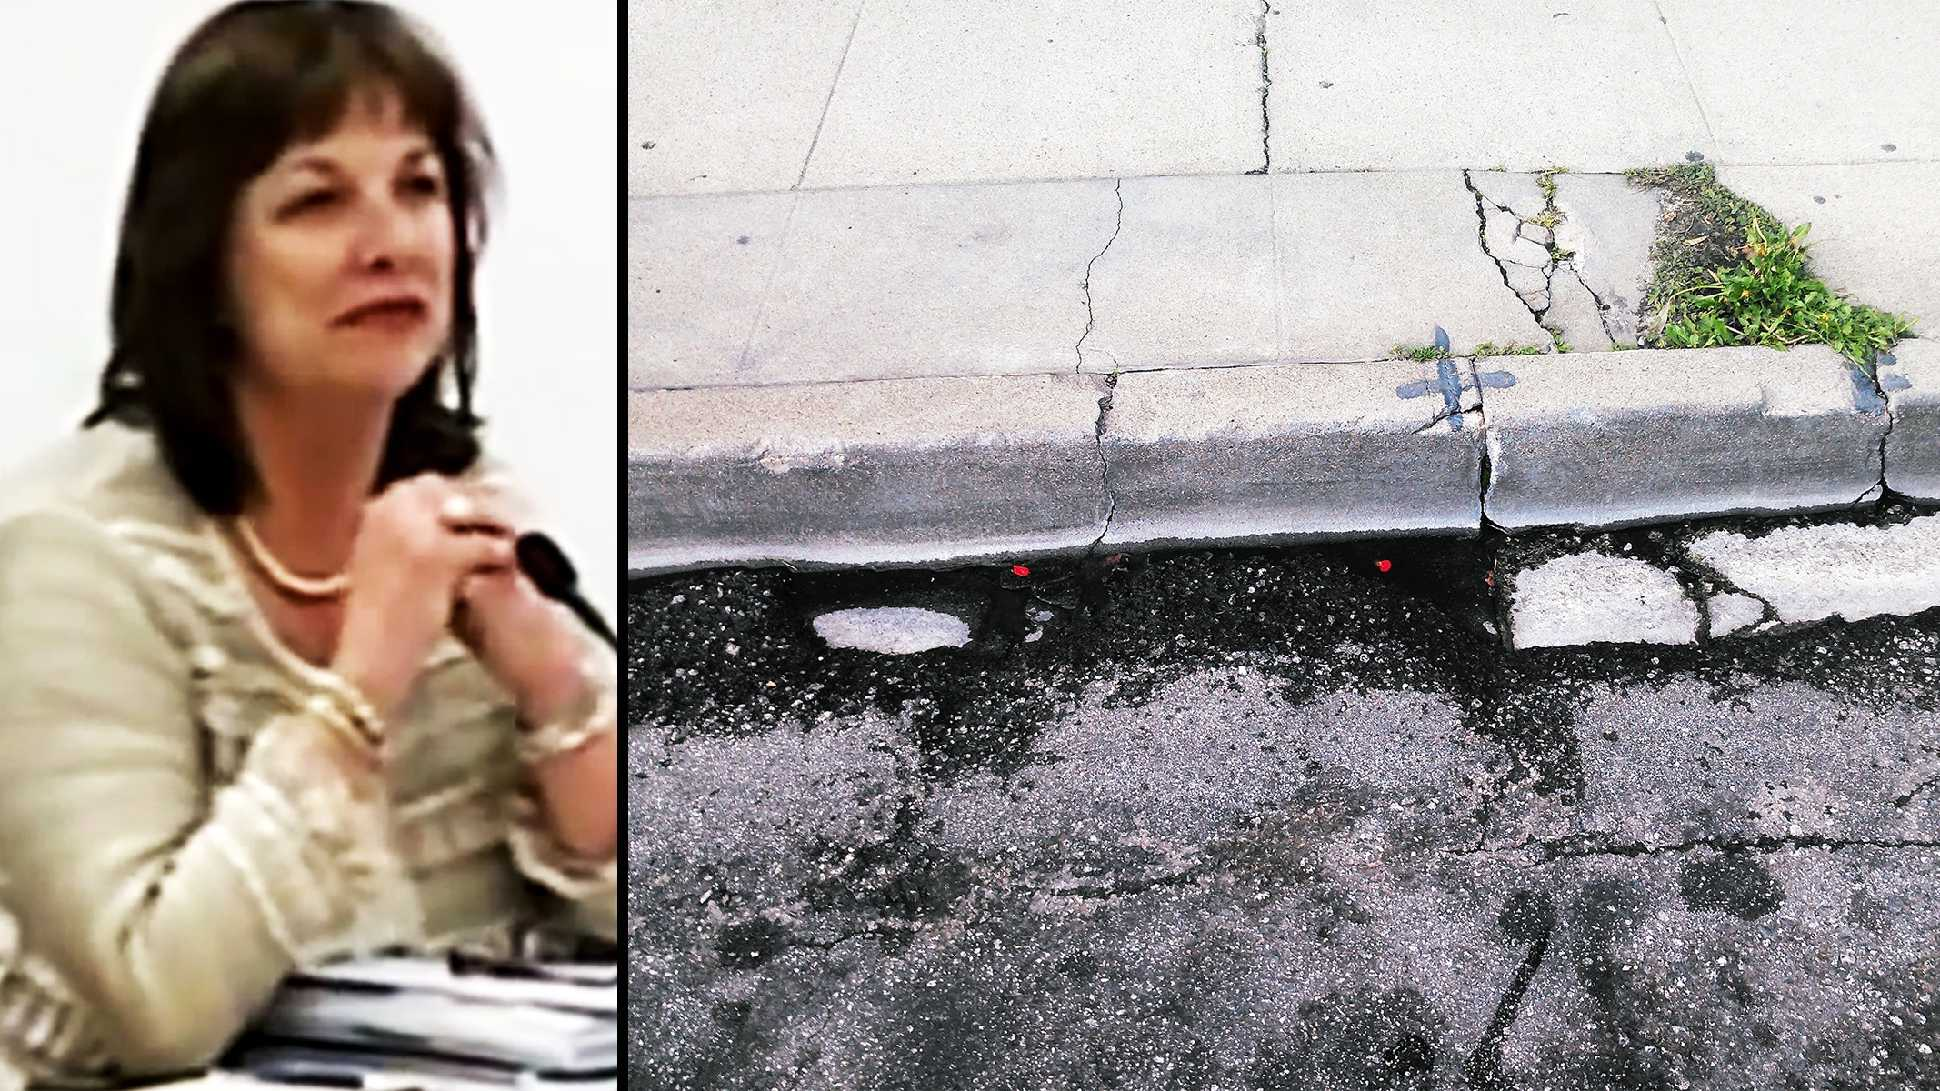 Marilyn Shepherd, left, and the curb in Monterey where she fell, right, are seen.